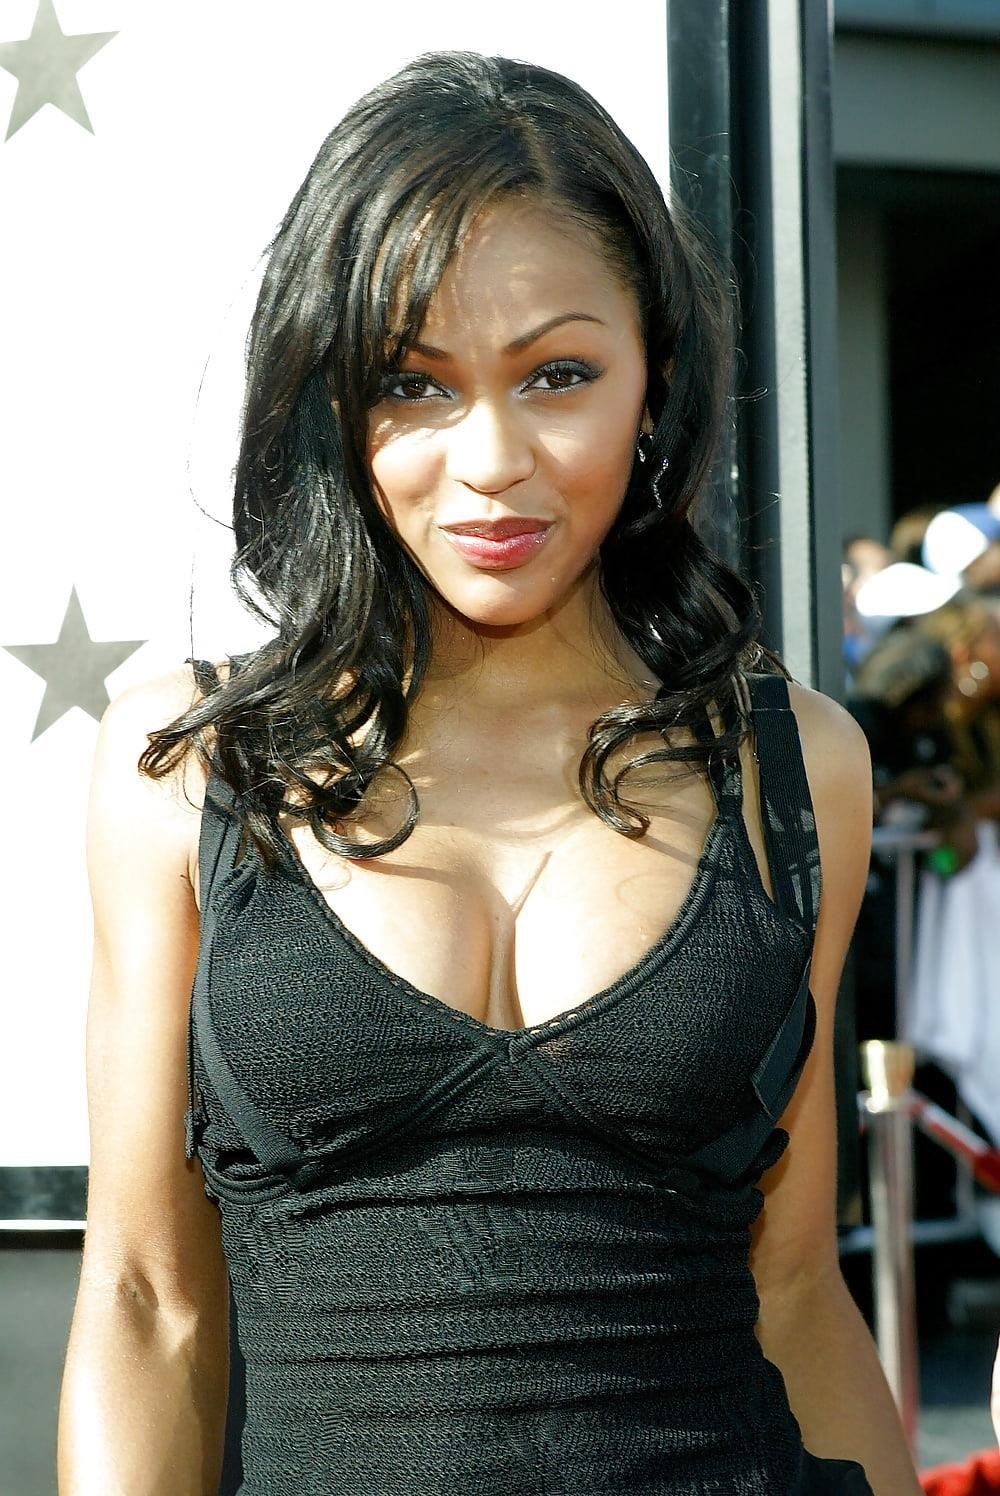 Meagan good nude pictures-3750